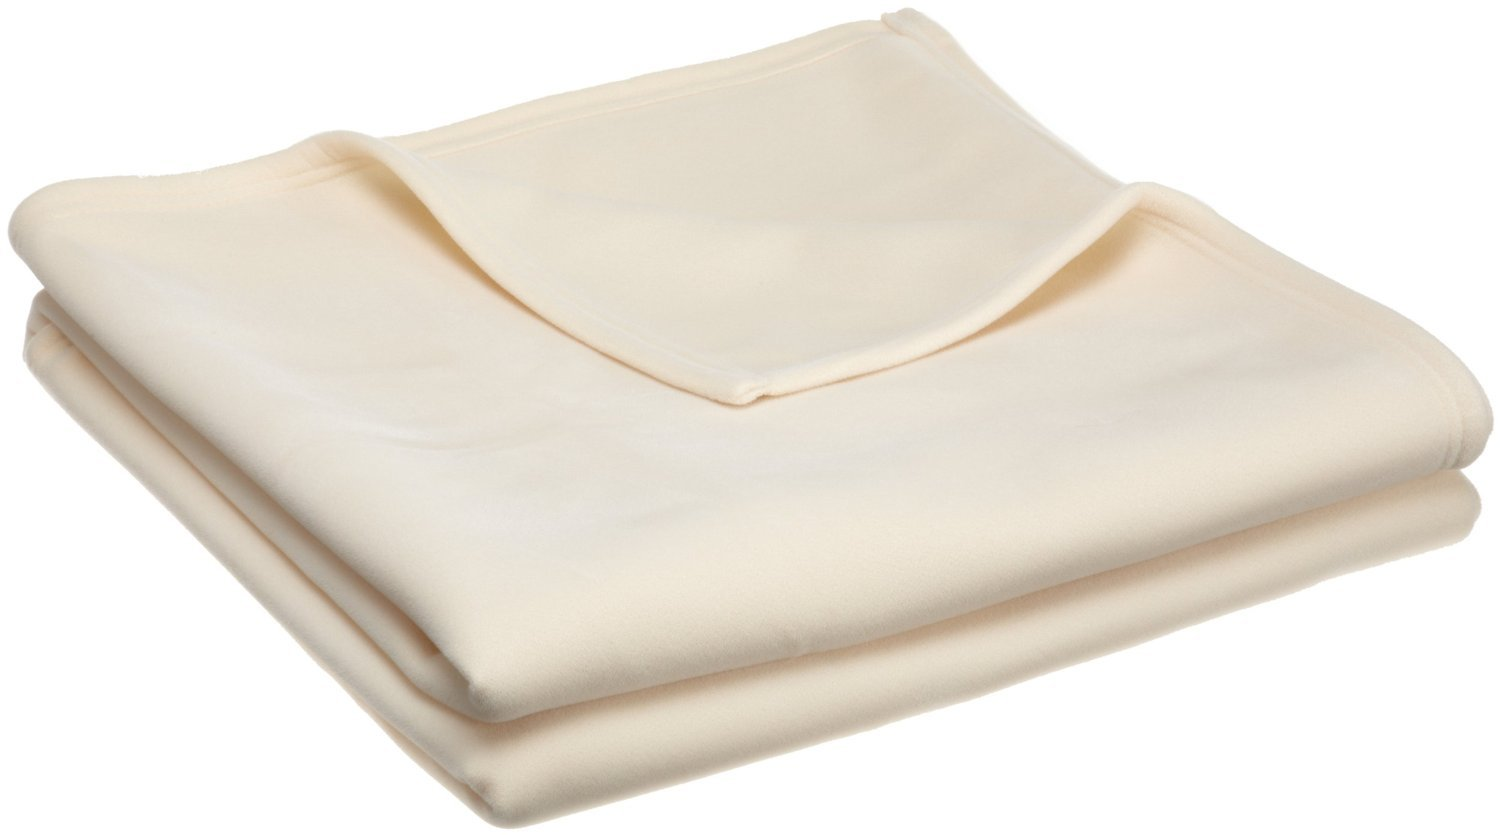 Vellux Original Blanket Ivory Twin/full (Case of 4)